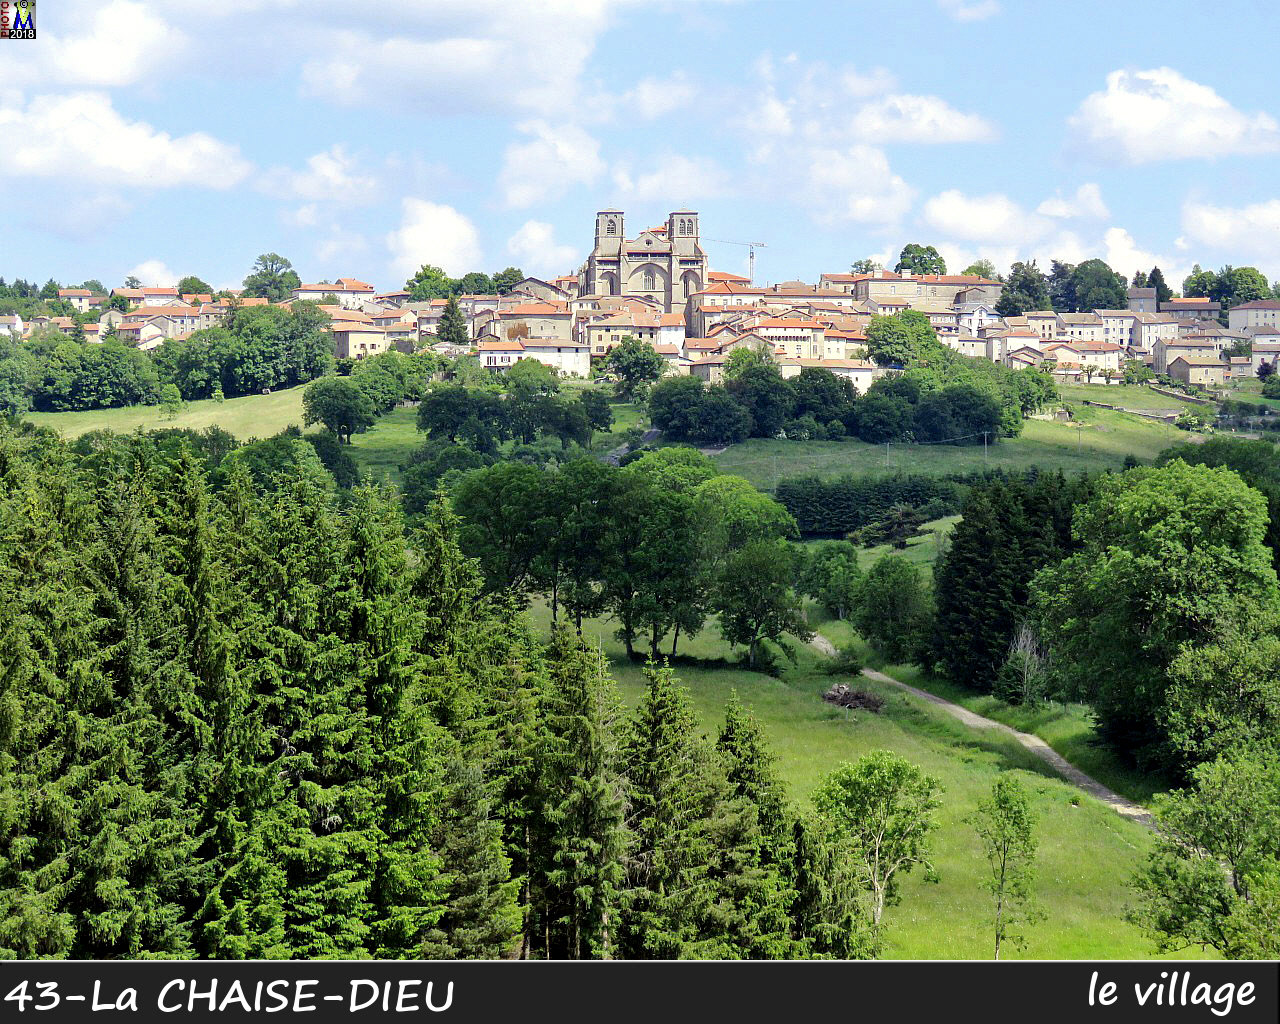 43CHAISE-DIEU_village_100.jpg